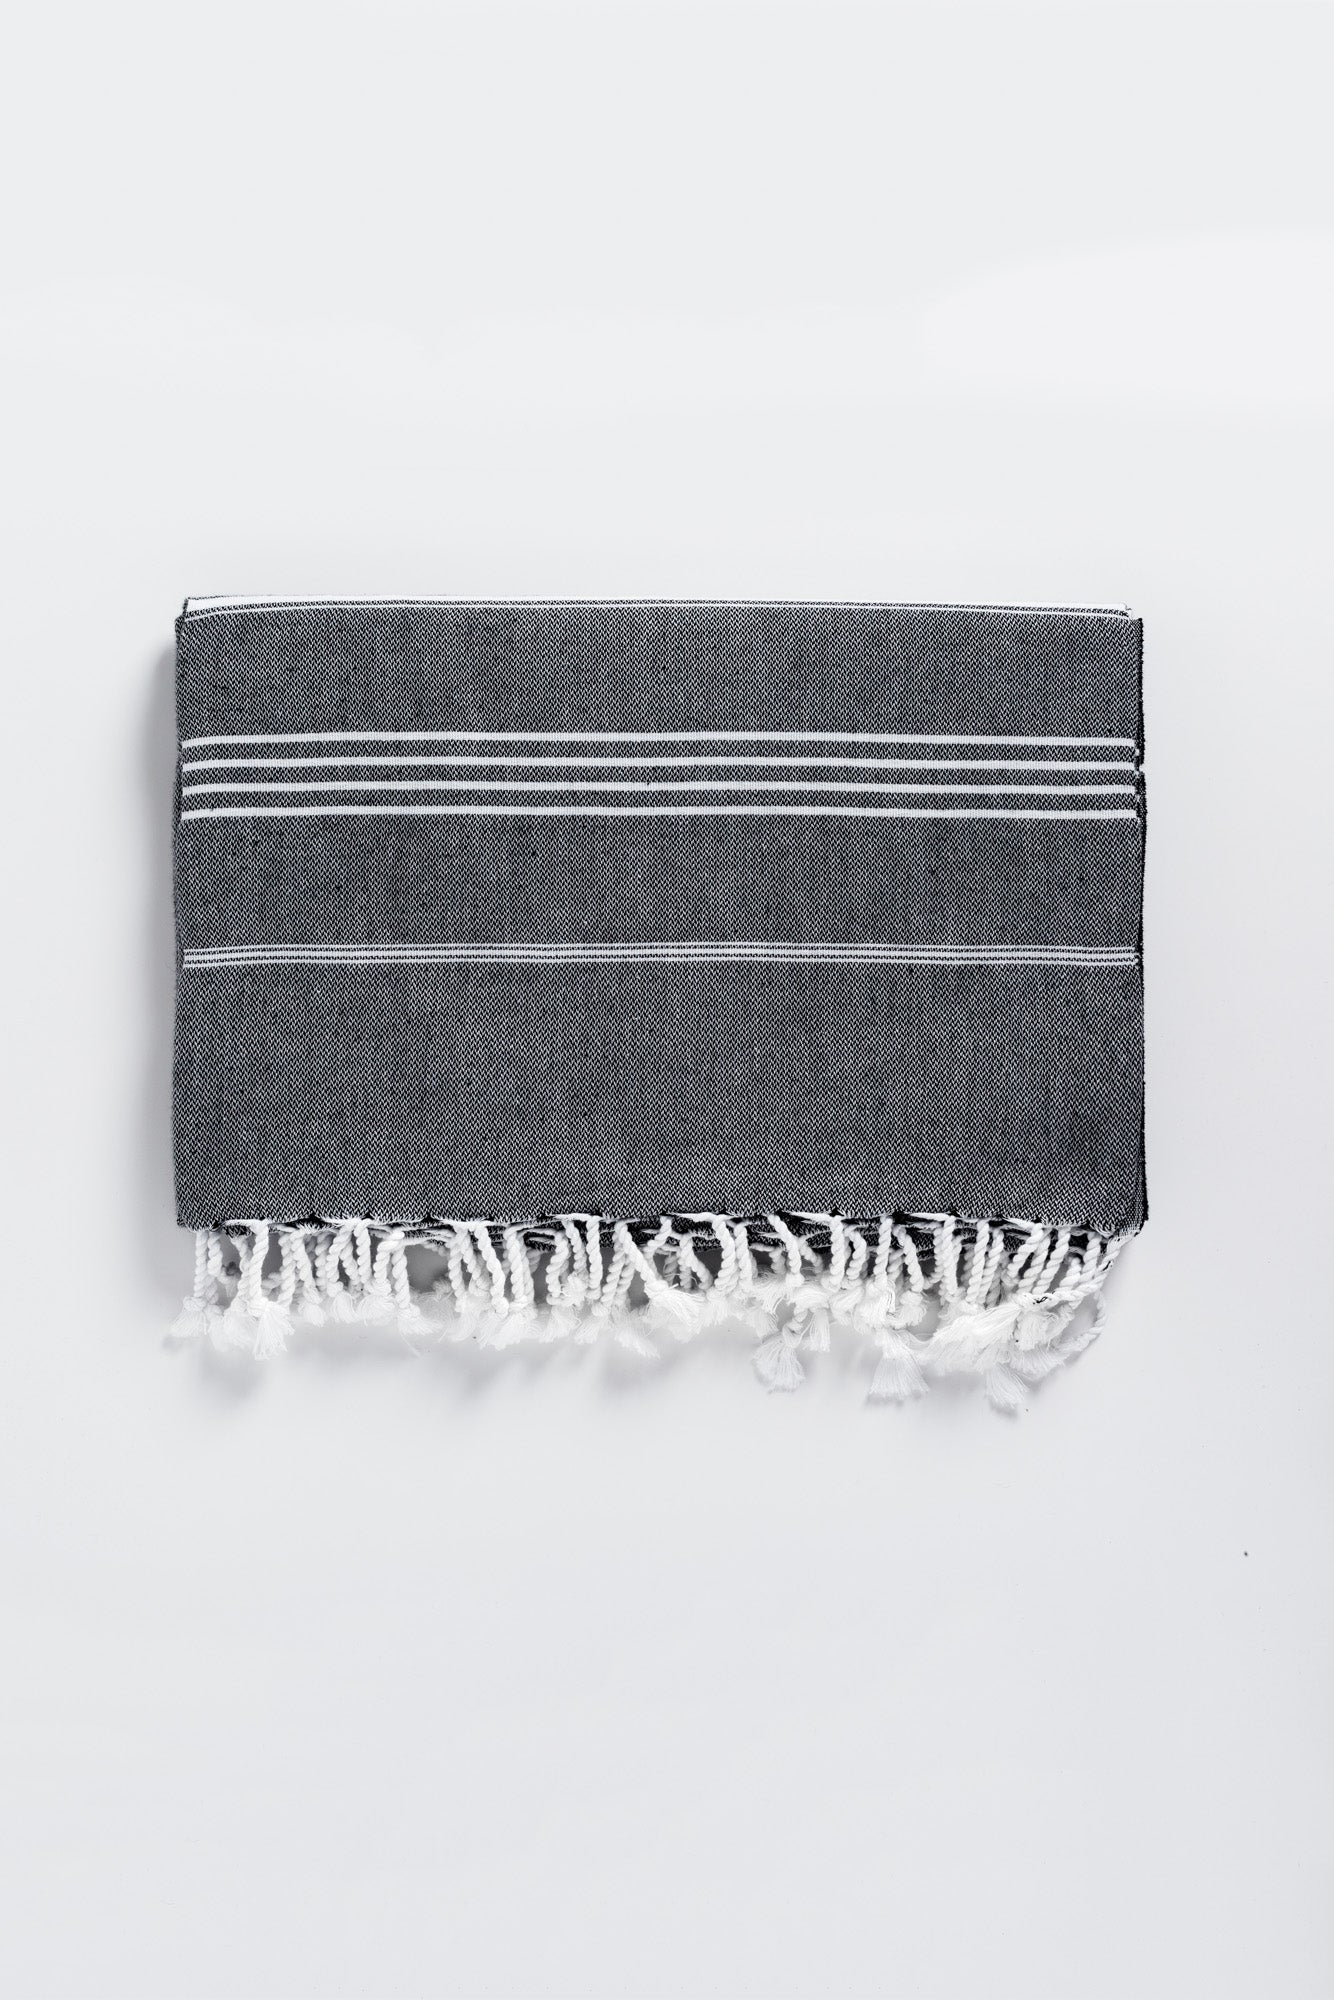 Oversized Basic Black Turkish Towel - Beach Towel for Two